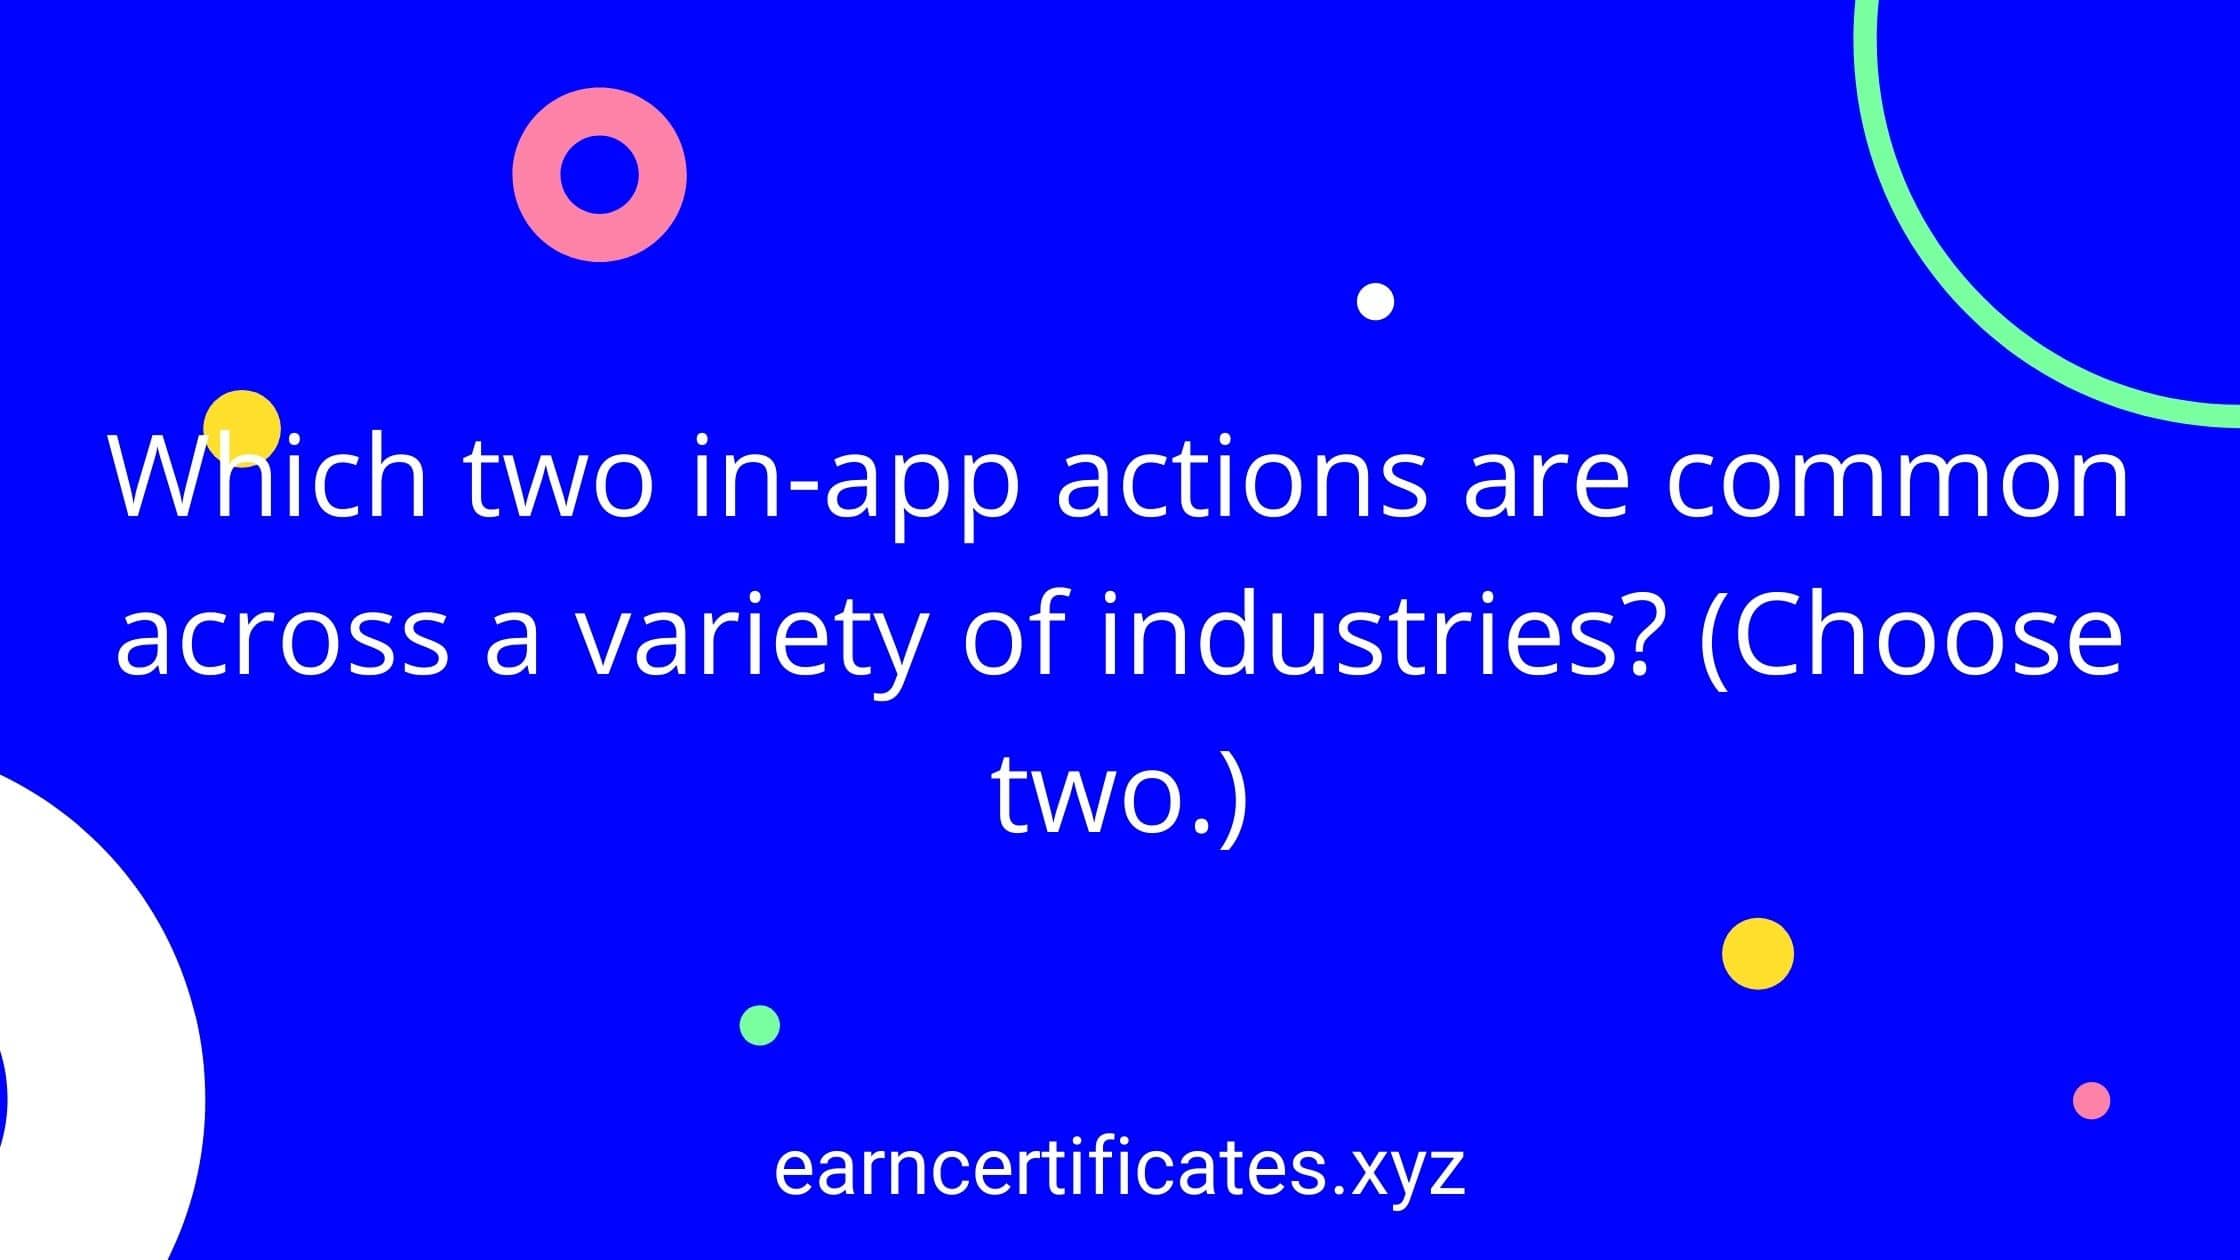 Which two in-app actions are common across a variety of industries? (Choose two.)